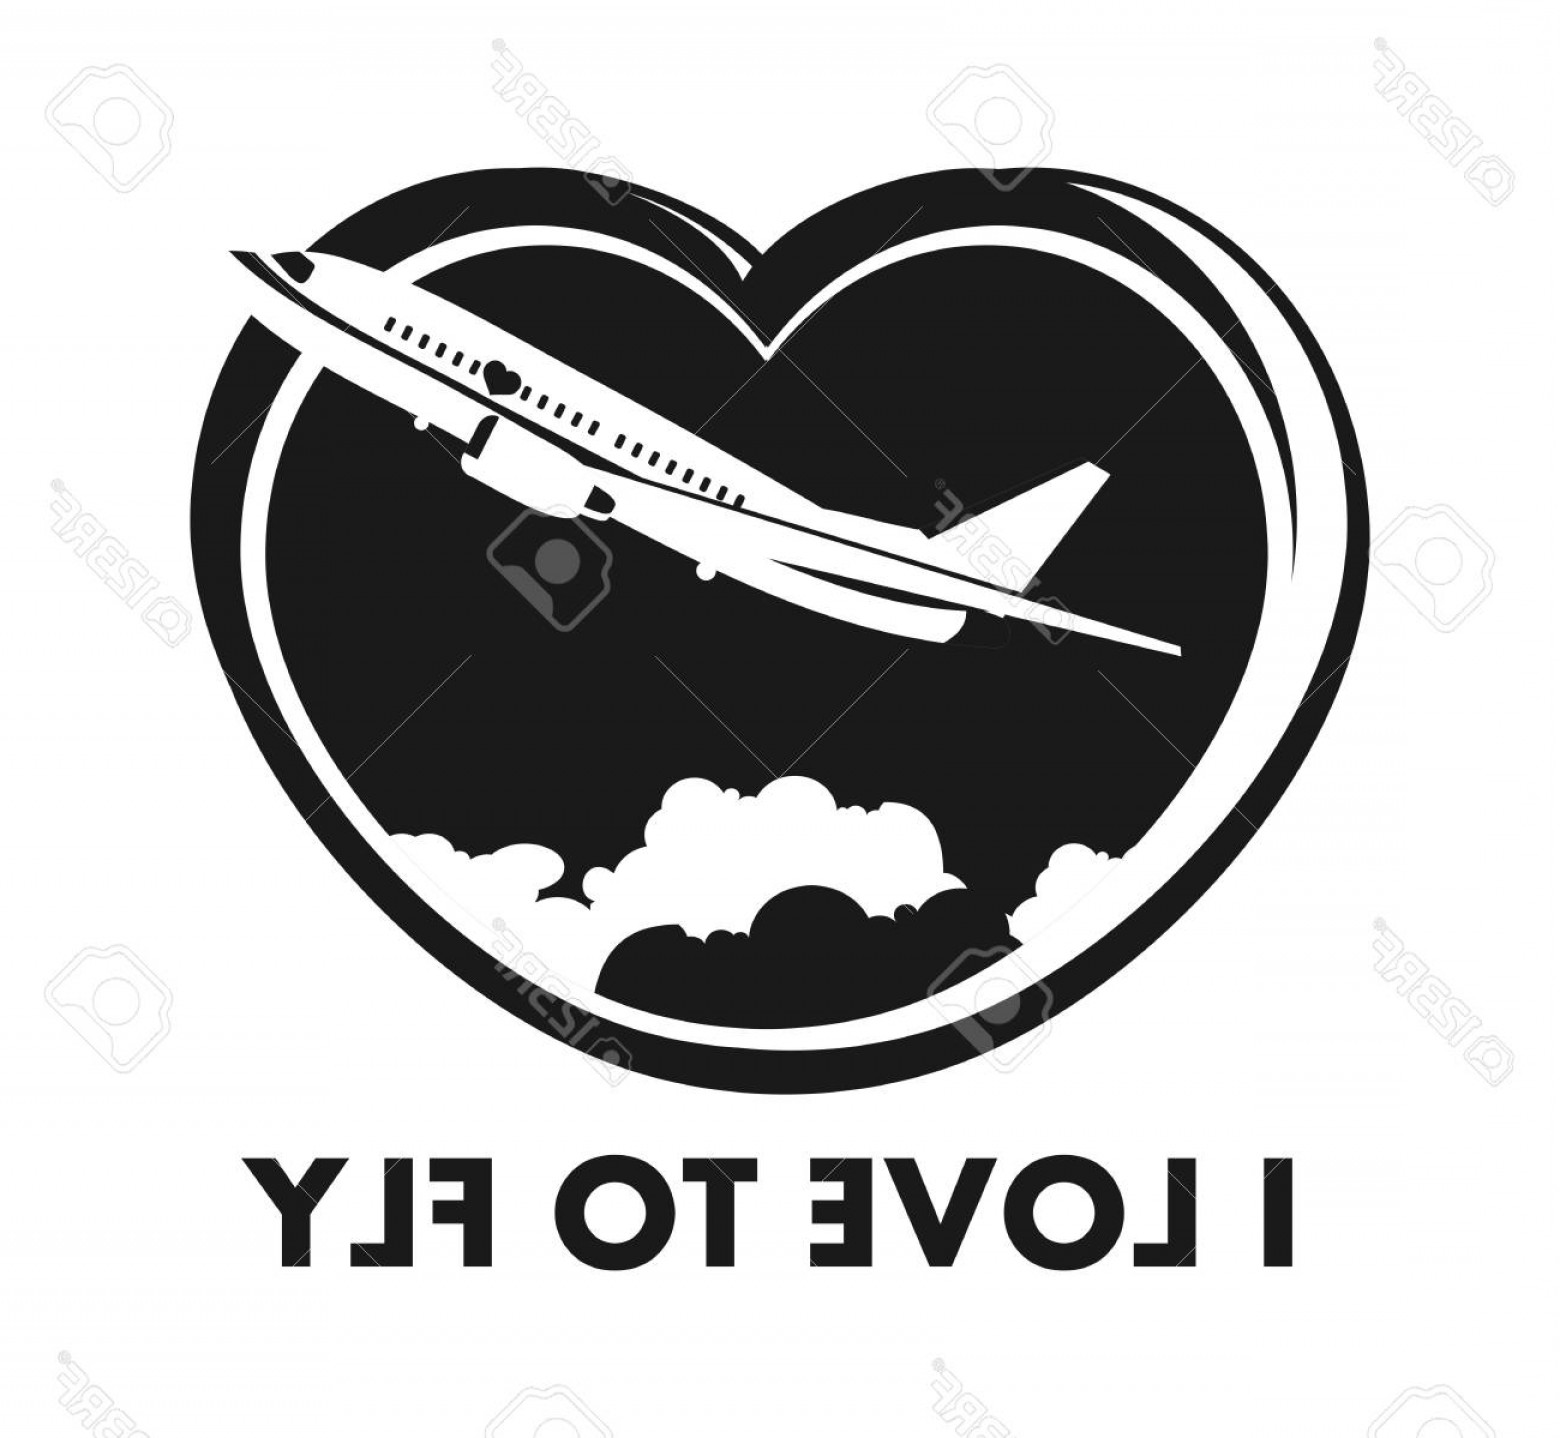 Black Heart And Plane Vector: Photostock Vector The Plane On A Background Of The Sky In The Shape Of A Heart Icon On A White Background Black And Wh